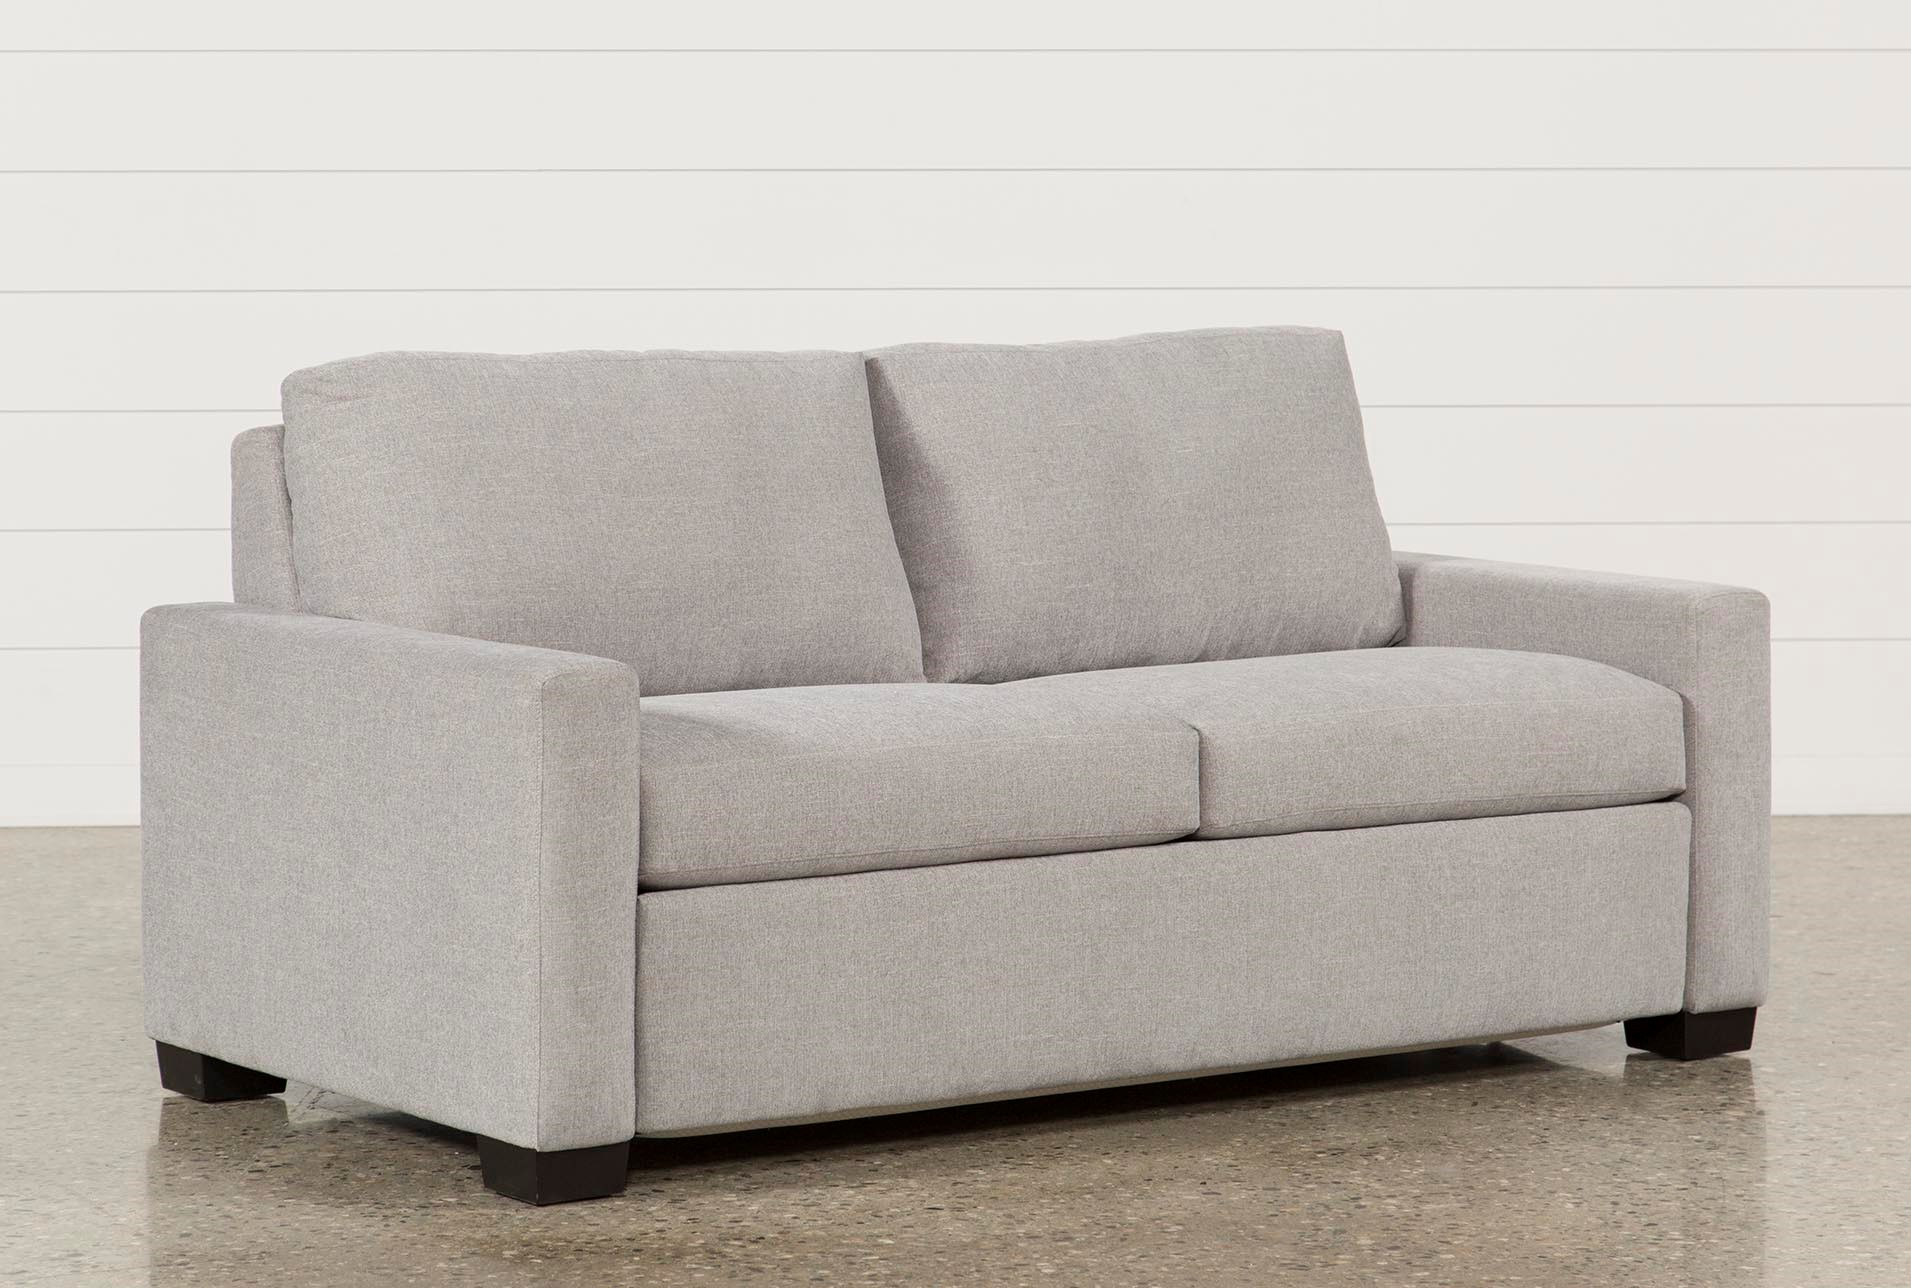 Transitional Sofa Beds Free Assembly With Delivery Living Spaces ~ What Is A Transitional Sofa